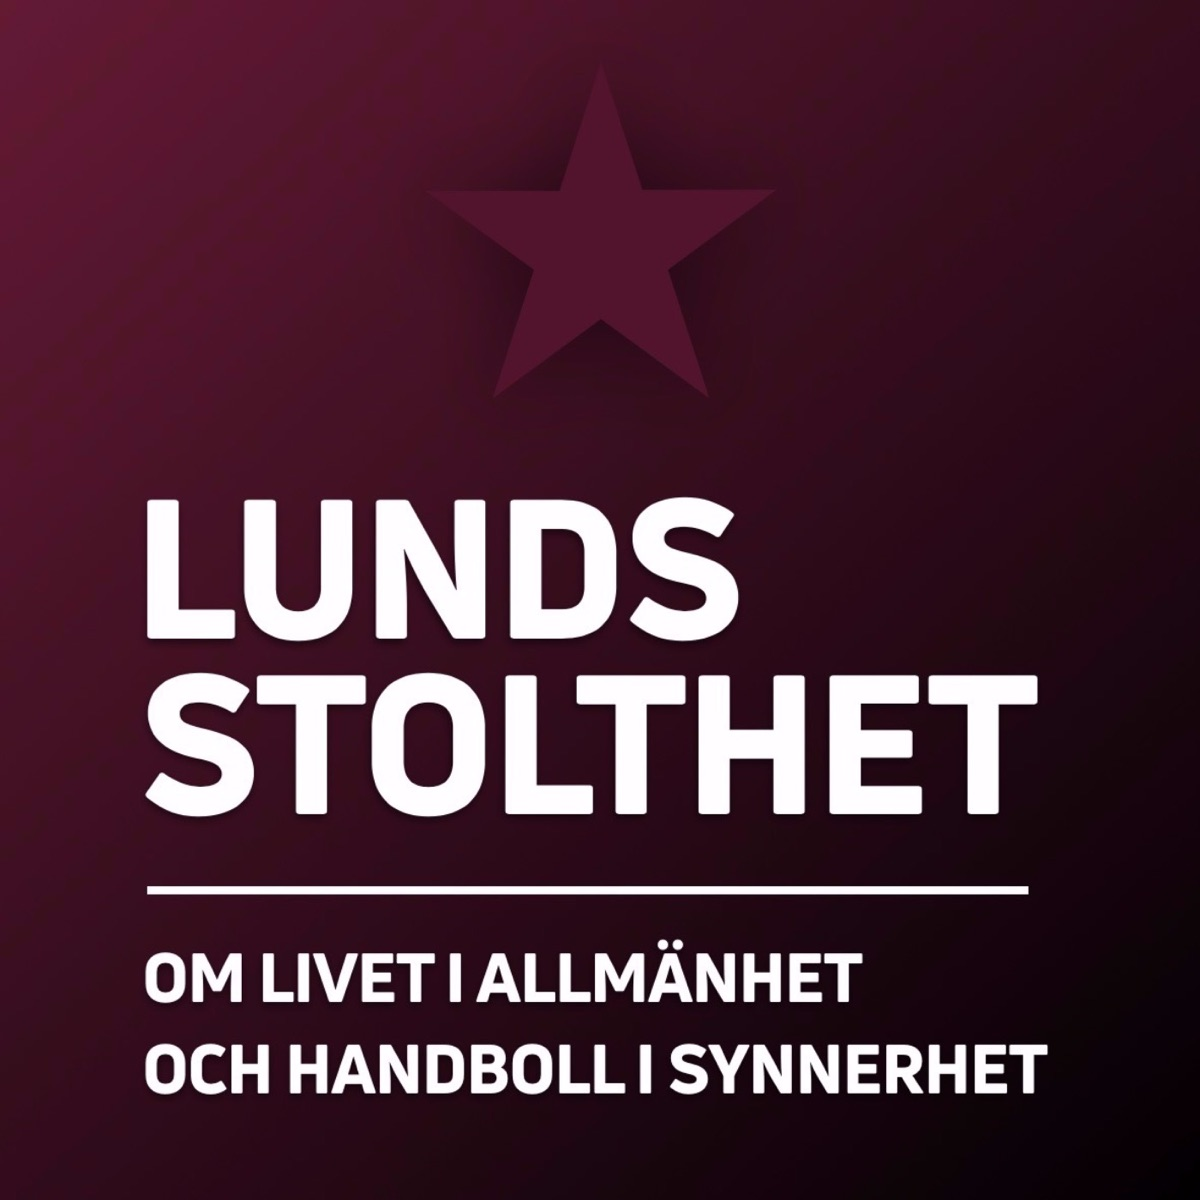 Lunds Stolthet